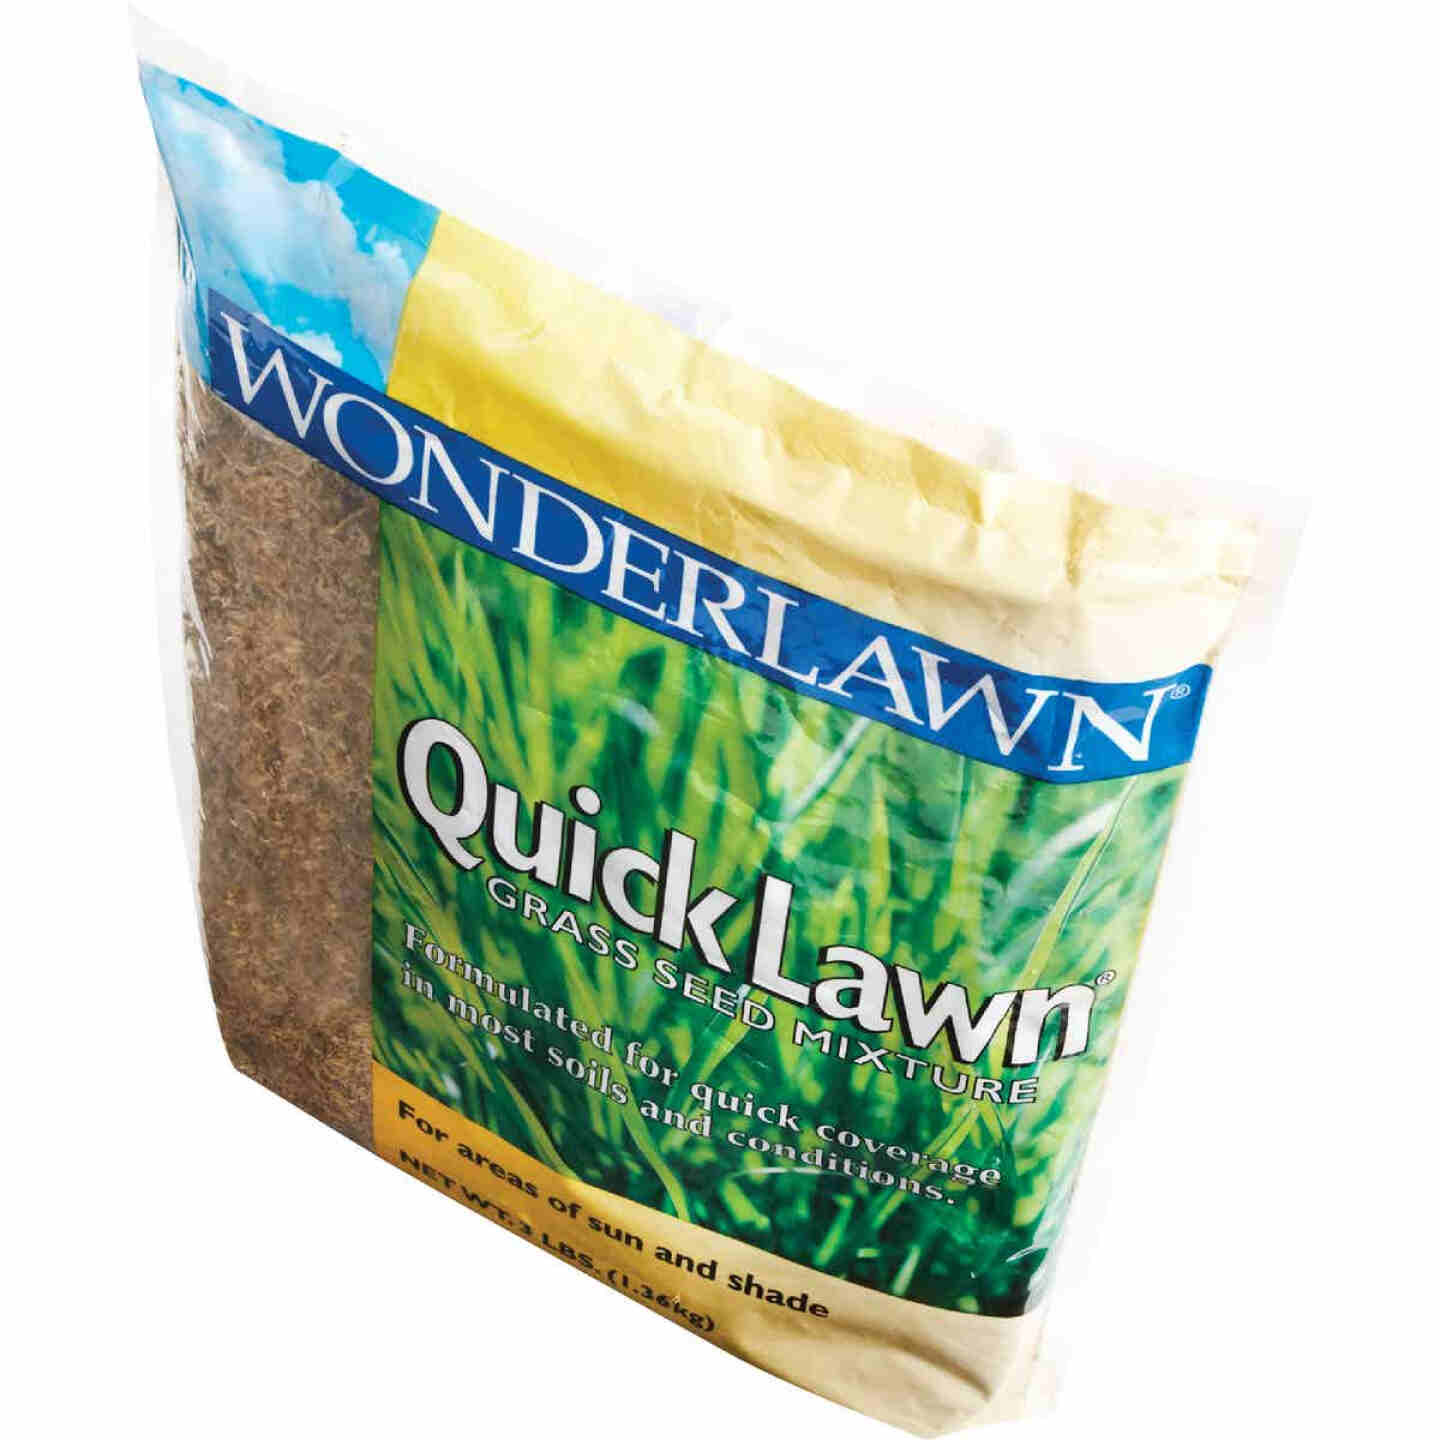 Wonderlawn Quick Lawn 3 Lb. 900 Sq. Ft. Coverage Annual & Perennial Ryegrass Grass Seed Image 5